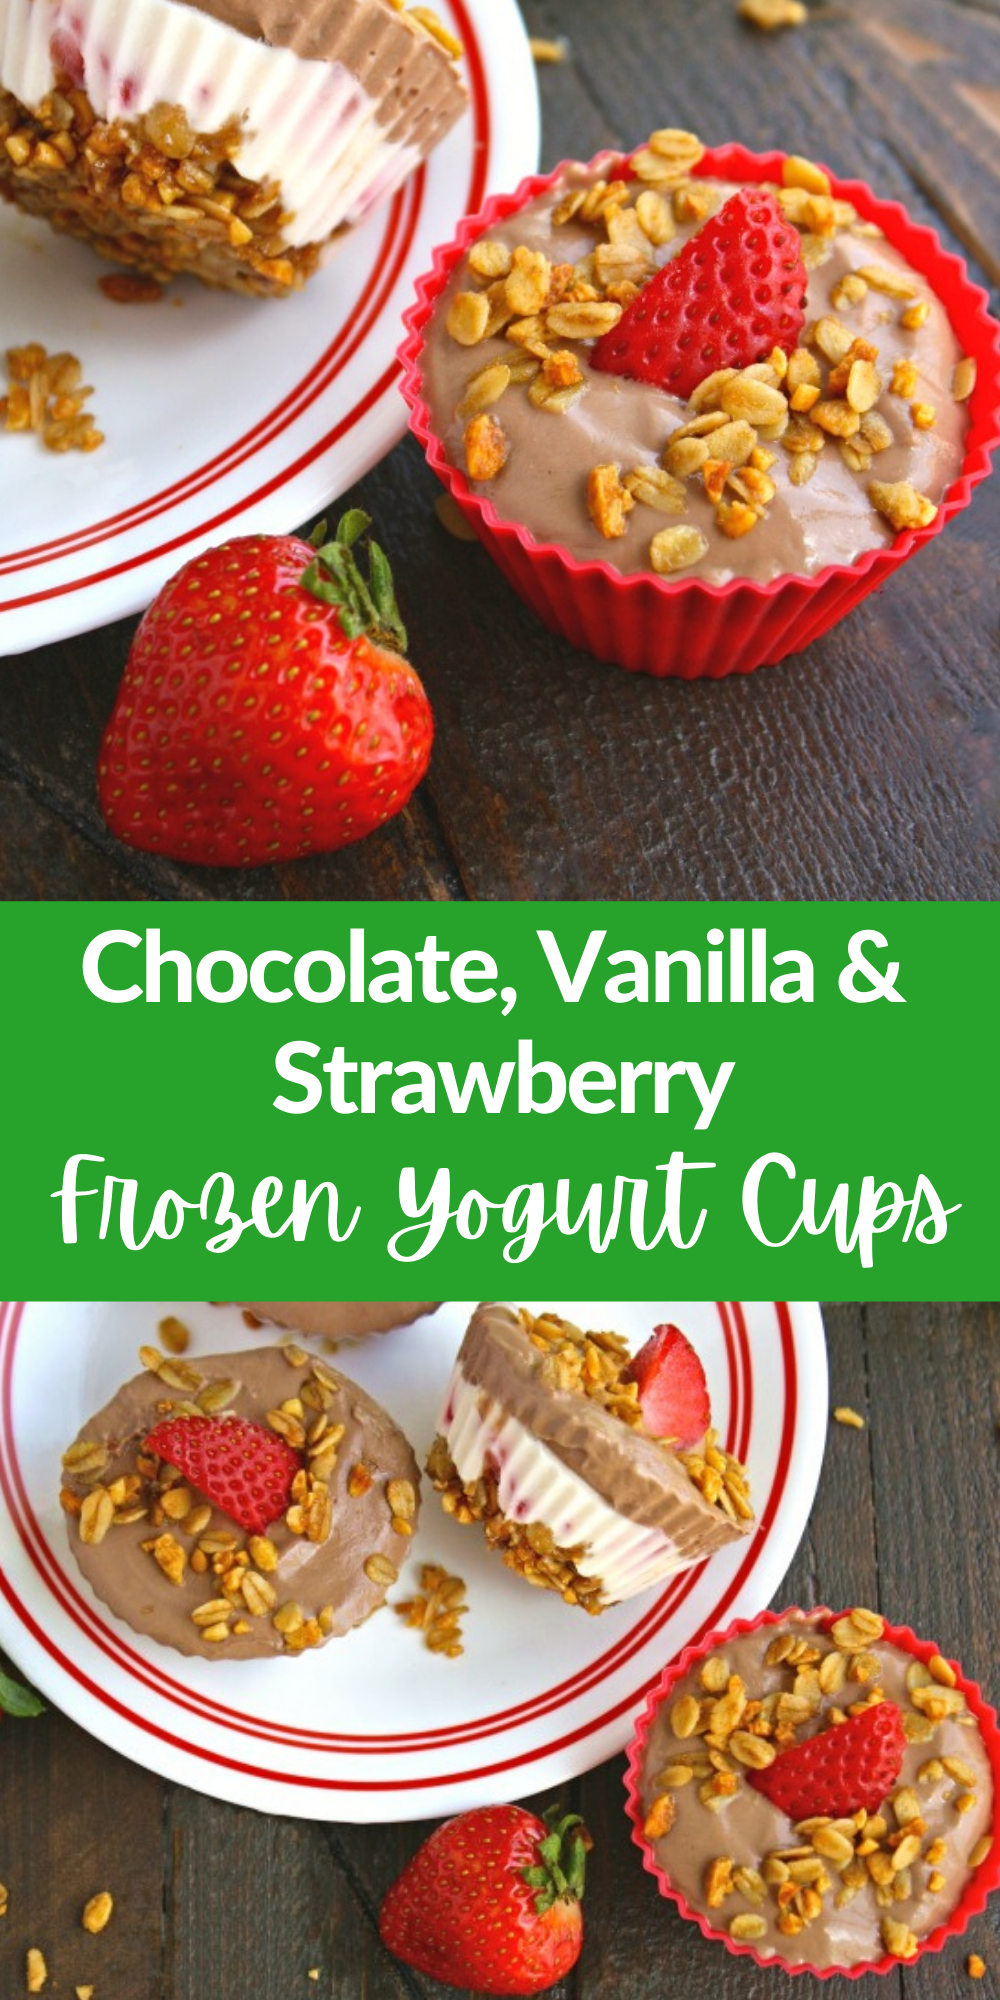 Chocolate, Vanilla & Strawberry Frozen Yogurt Cups are so tasty and easy to make! You'll love these Chocolate, Vanilla & Strawberry Frozen Yogurt Cups anytime of the day!